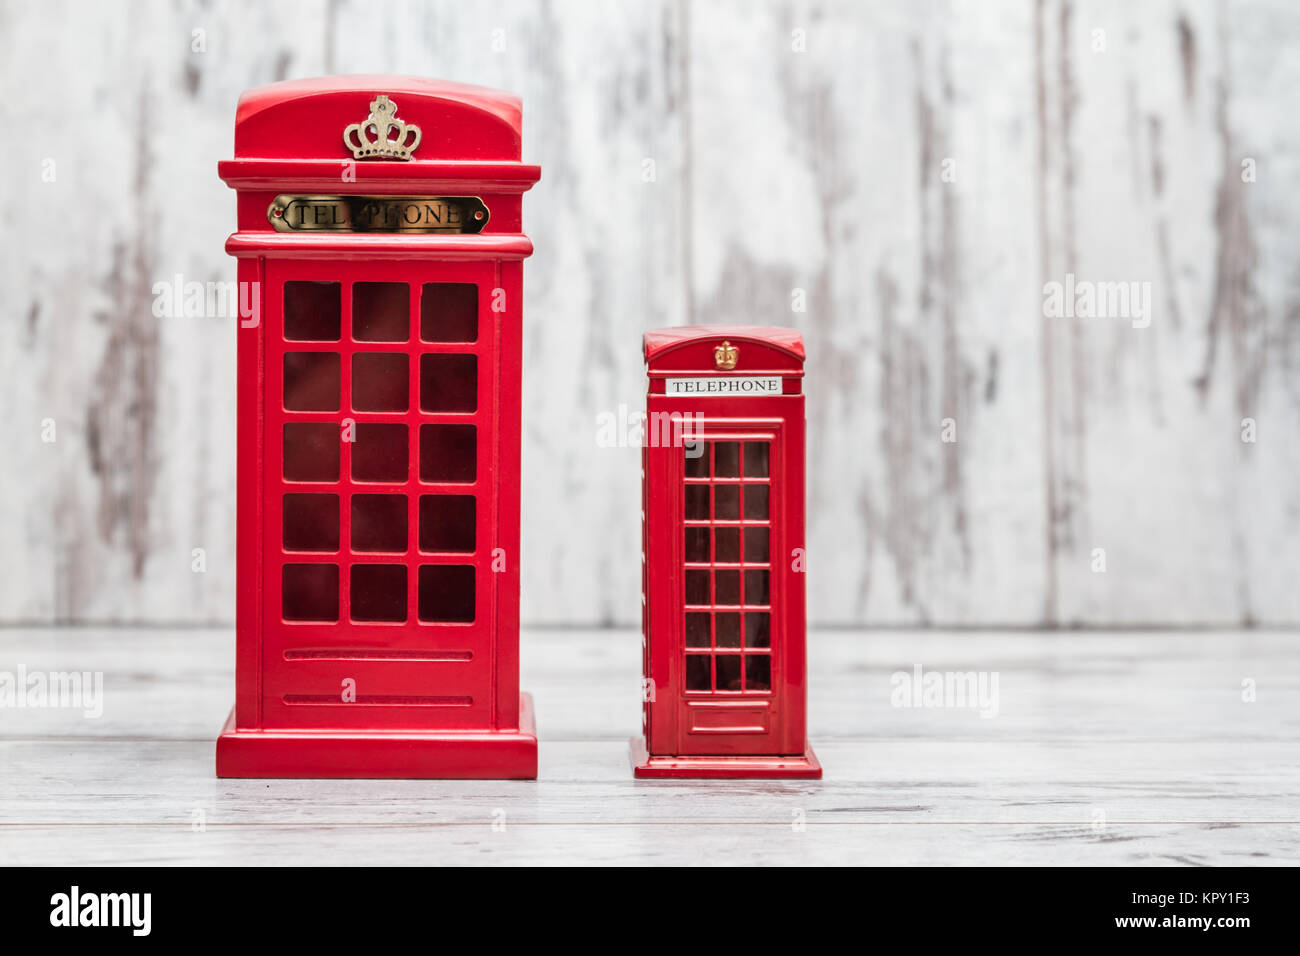 Decorative Money Box as Classic British Red Phone Booth - Stock Image